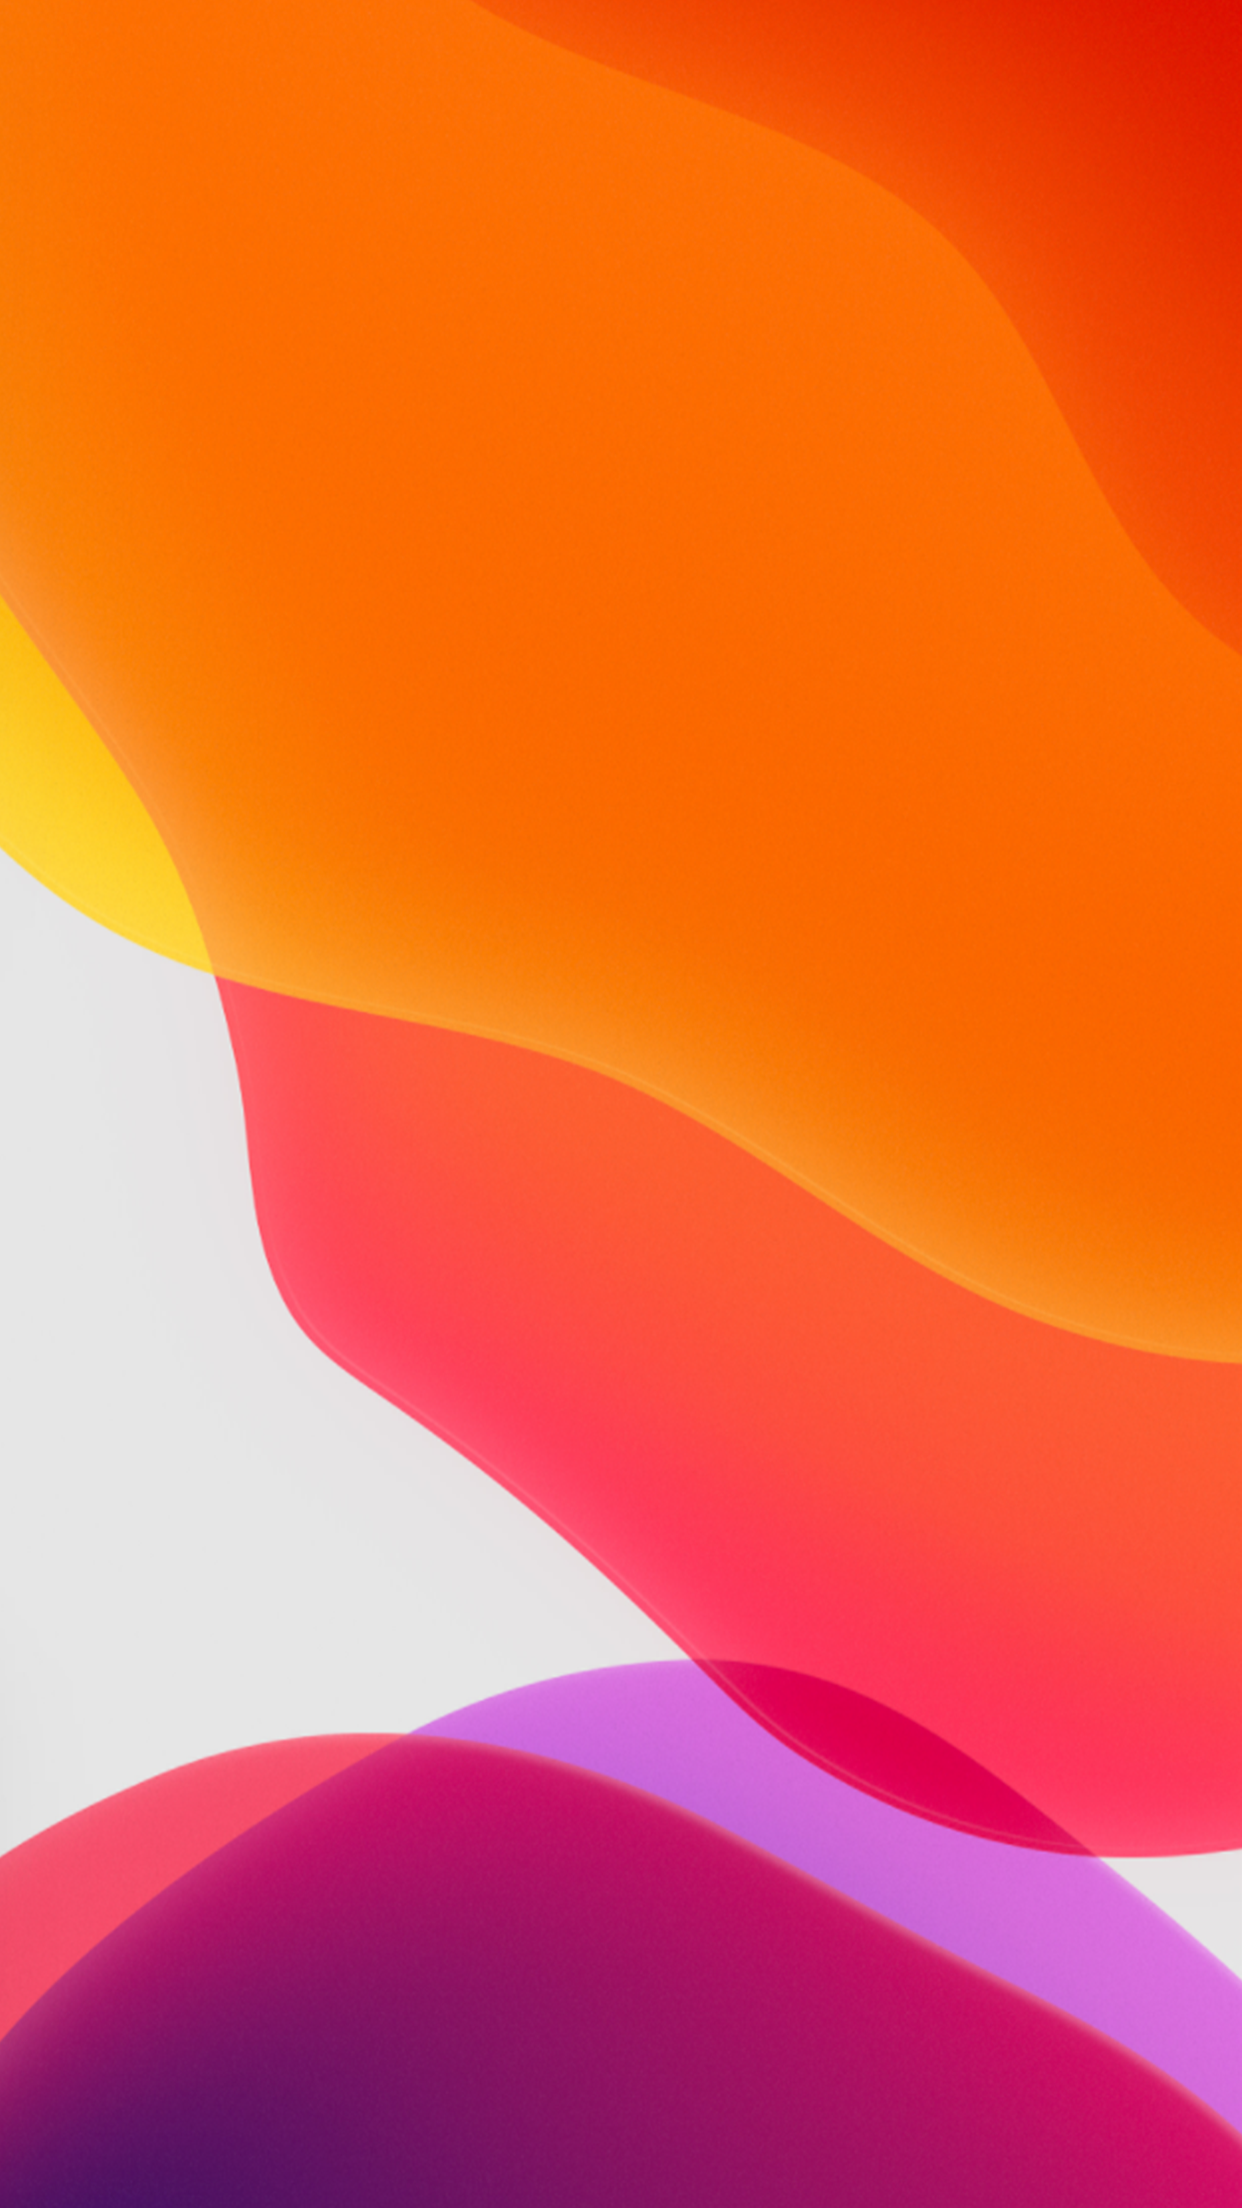 63+ Cool iOS 13 Wallpapers Available for Free Download on